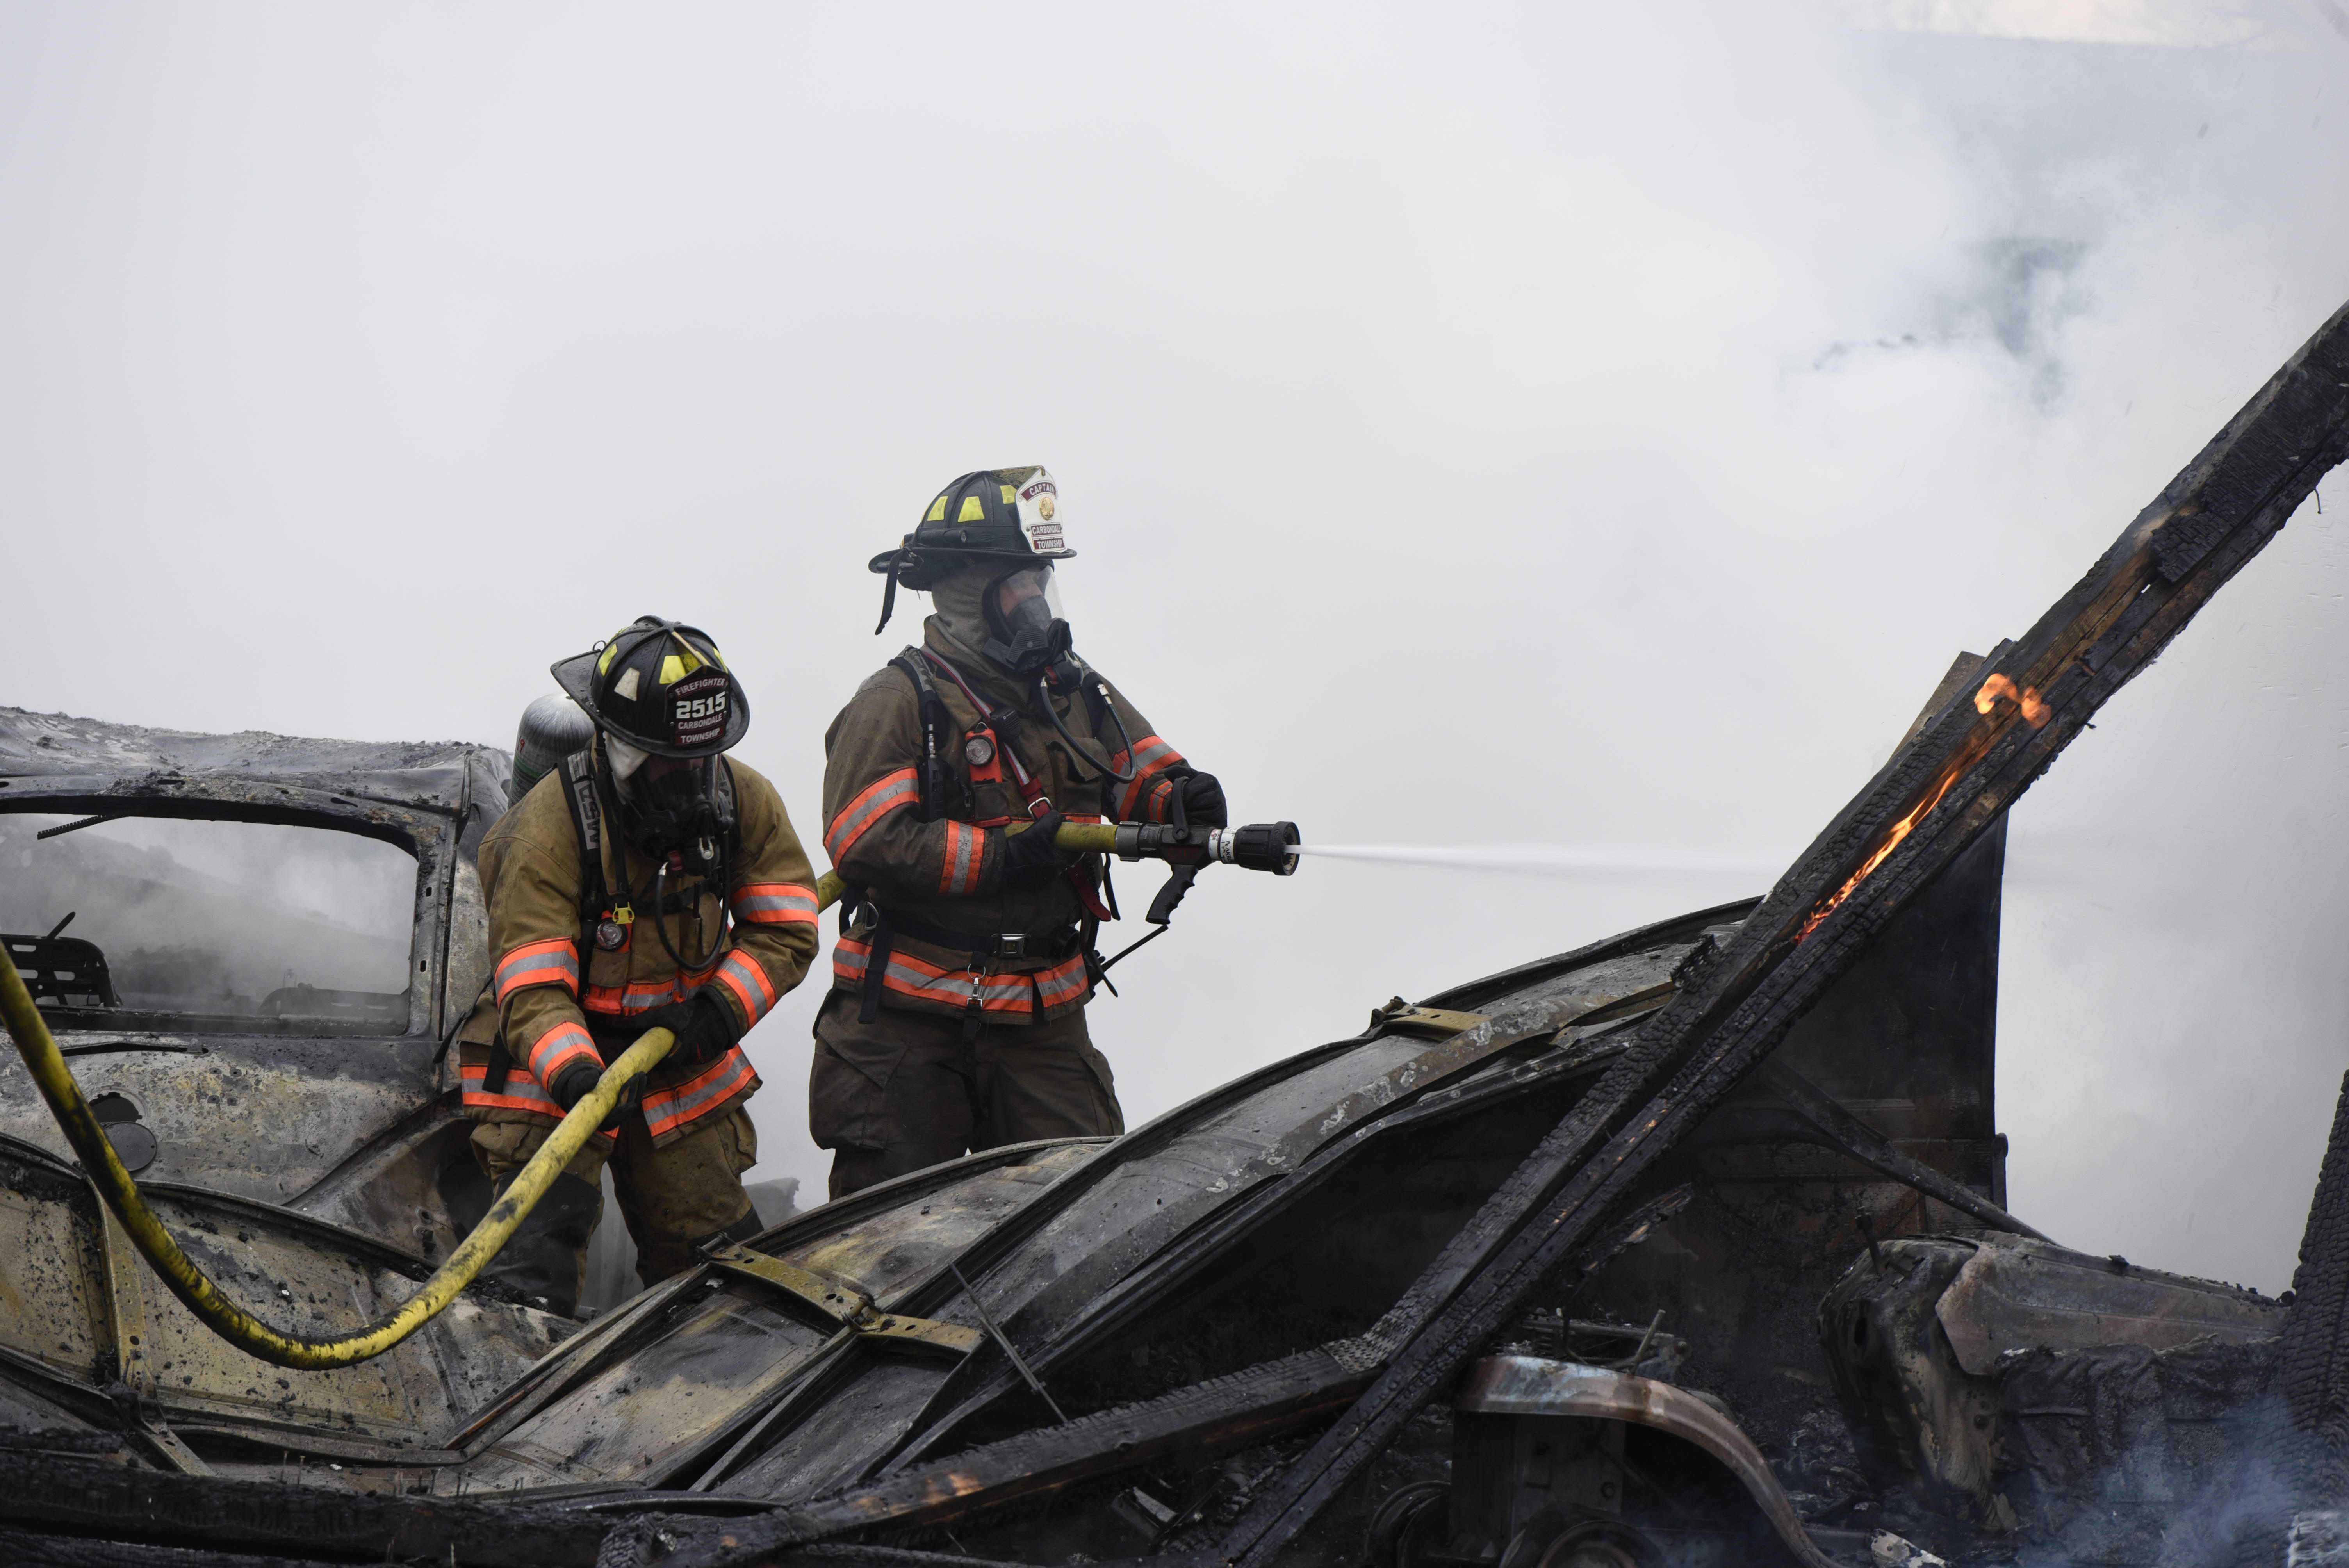 Firefighters extinguish remaining flames of a destroyed garage Wednesday, Feb. 1, 2017, after a fire near the intersection of Kennedy and Union Hill roads. (Bill Lukitsch | @lukitsbill)